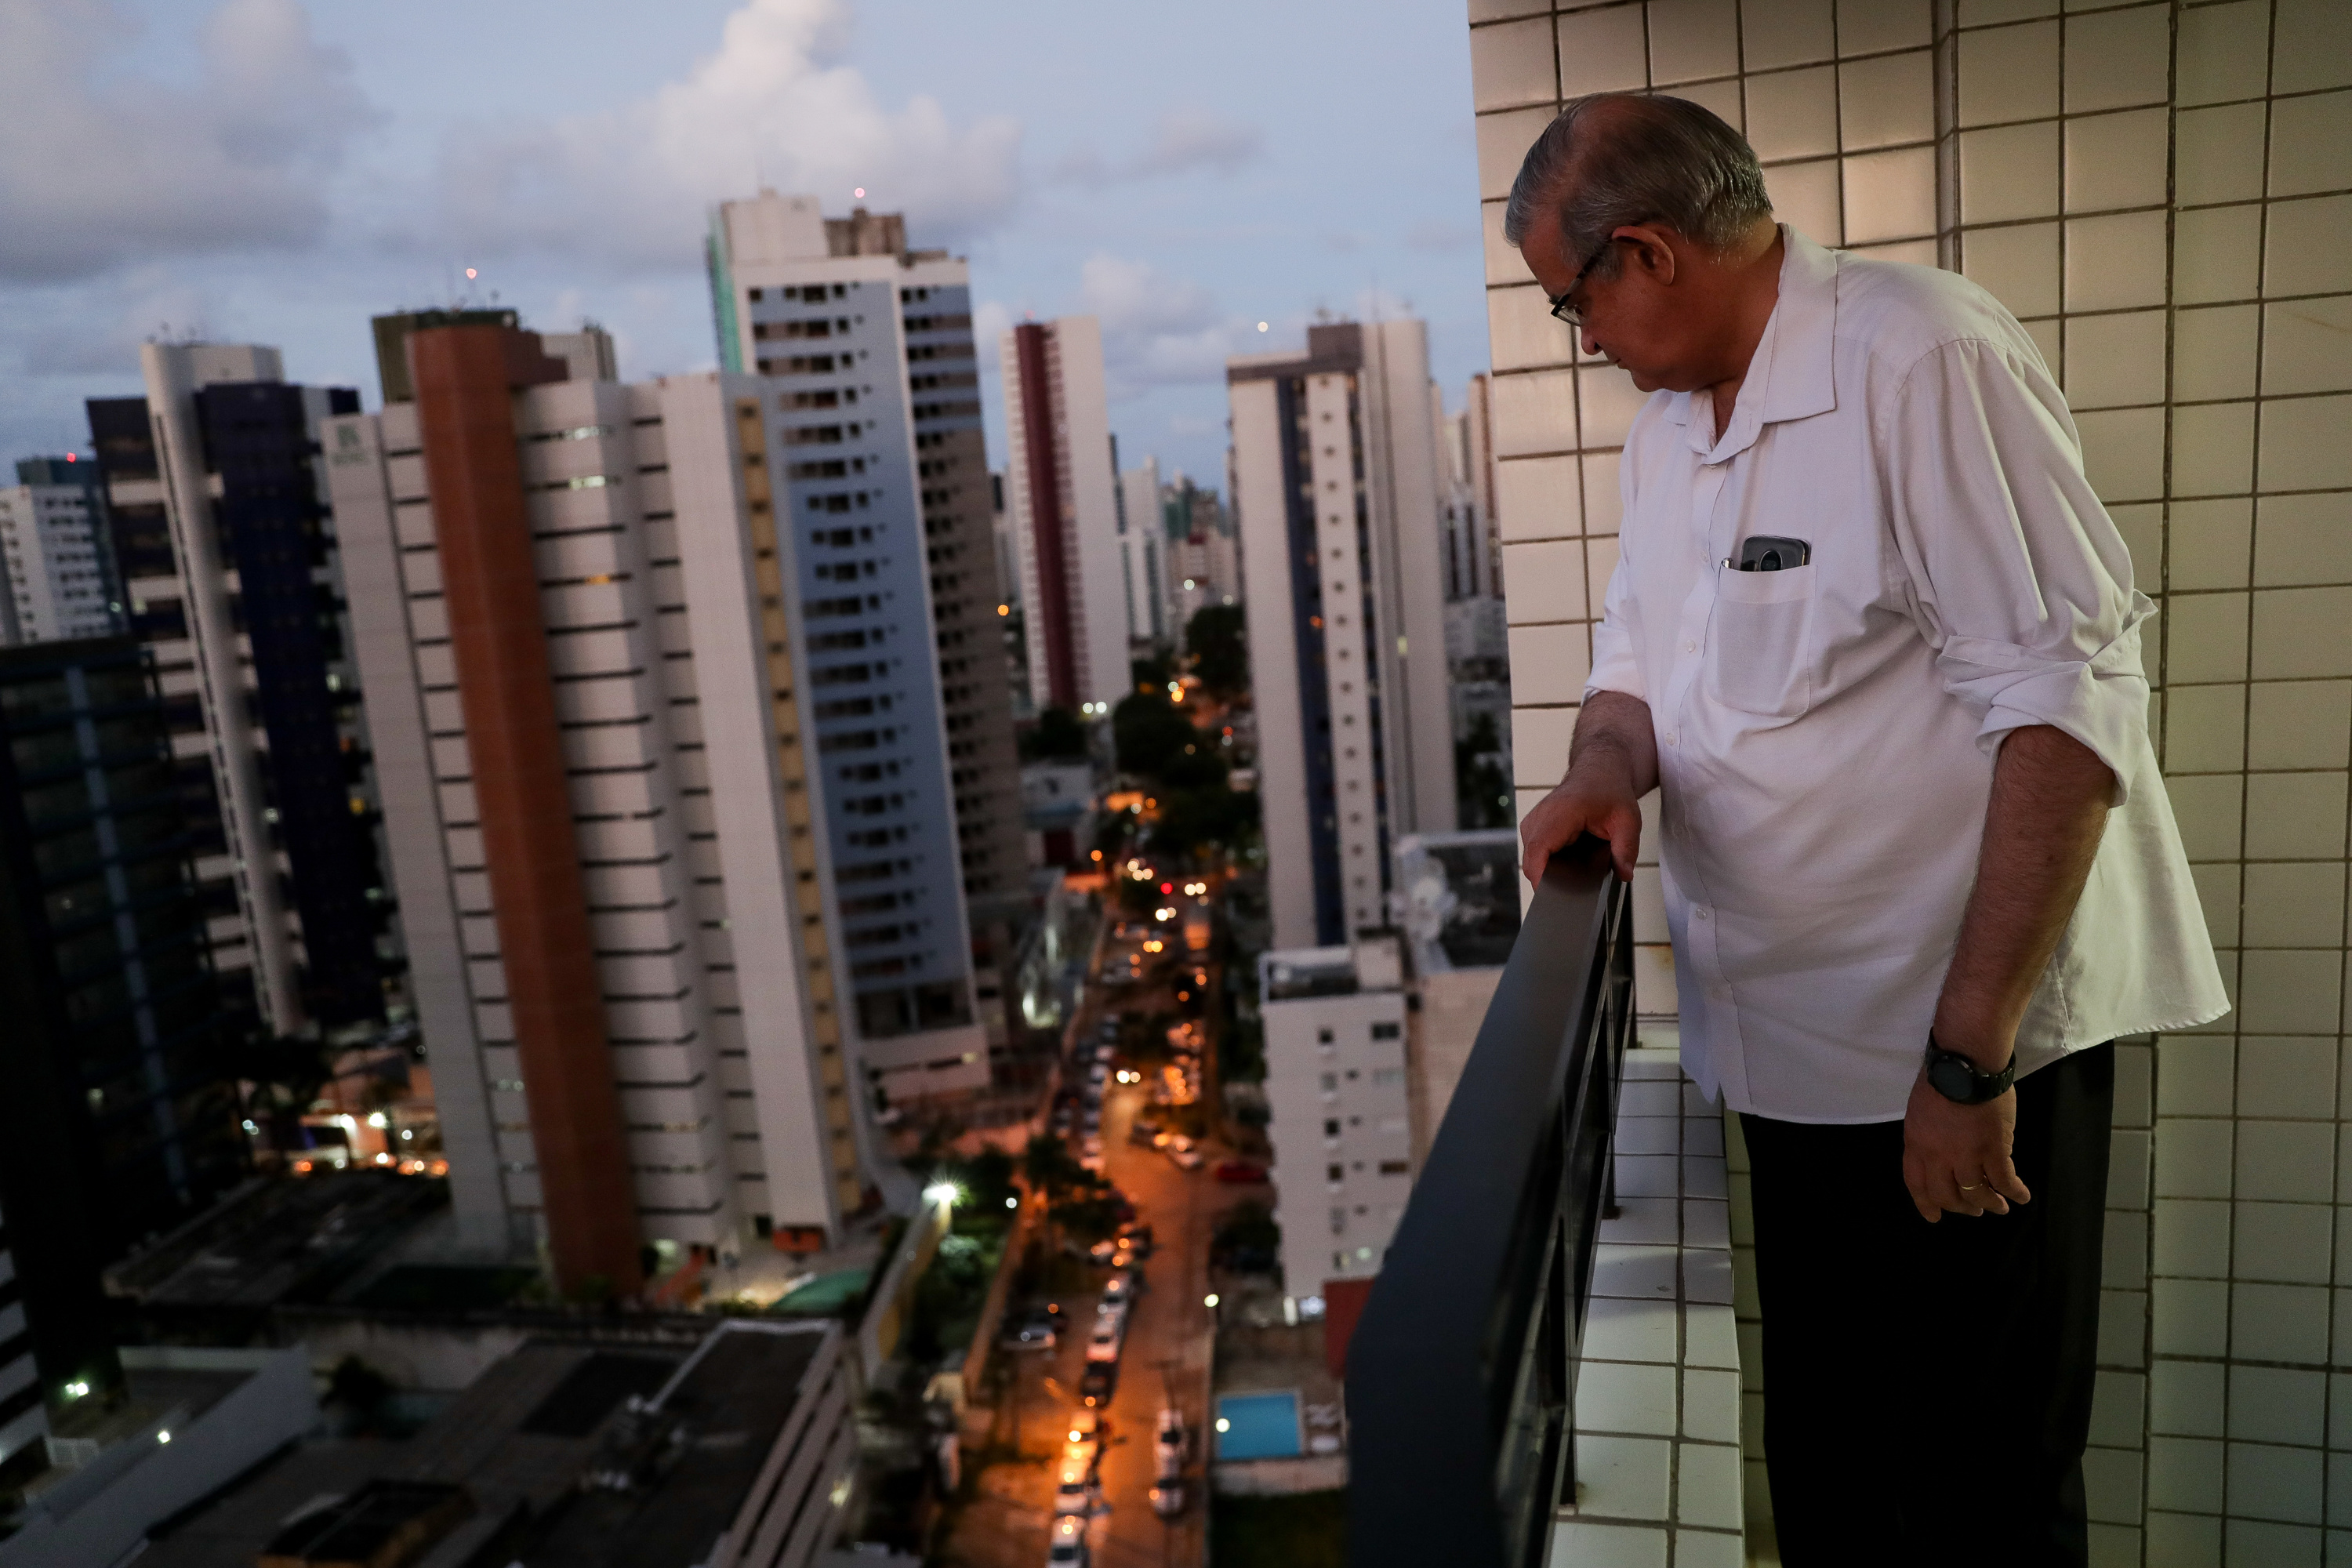 Paulo Almeida Saihg looks down at the street from his high-rise apartment in Recife, Brazil, on Saturday, May 26, 2018.